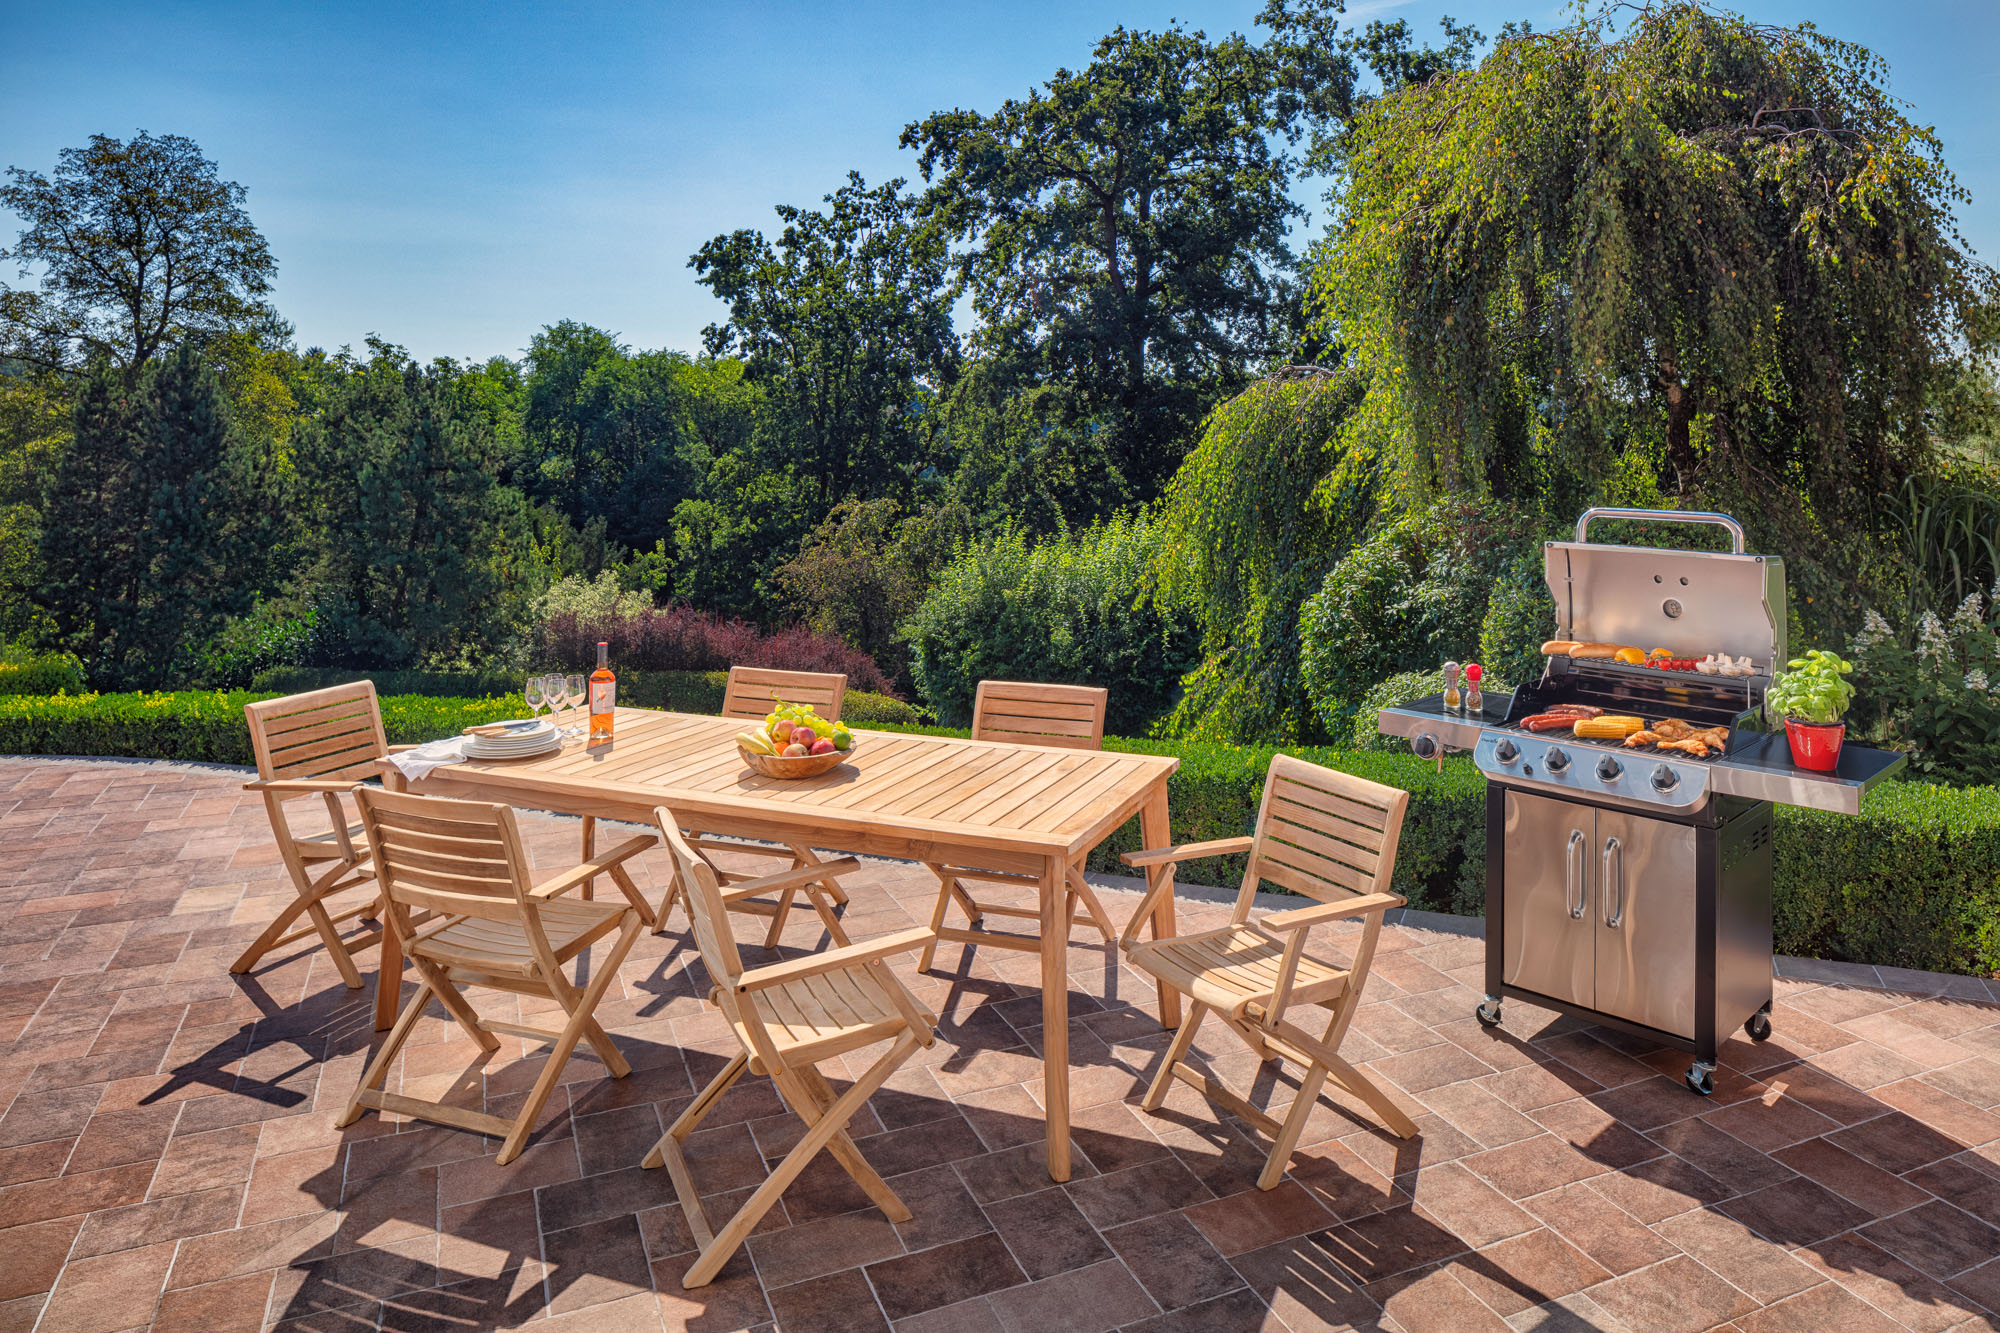 Mountfield patio furniture